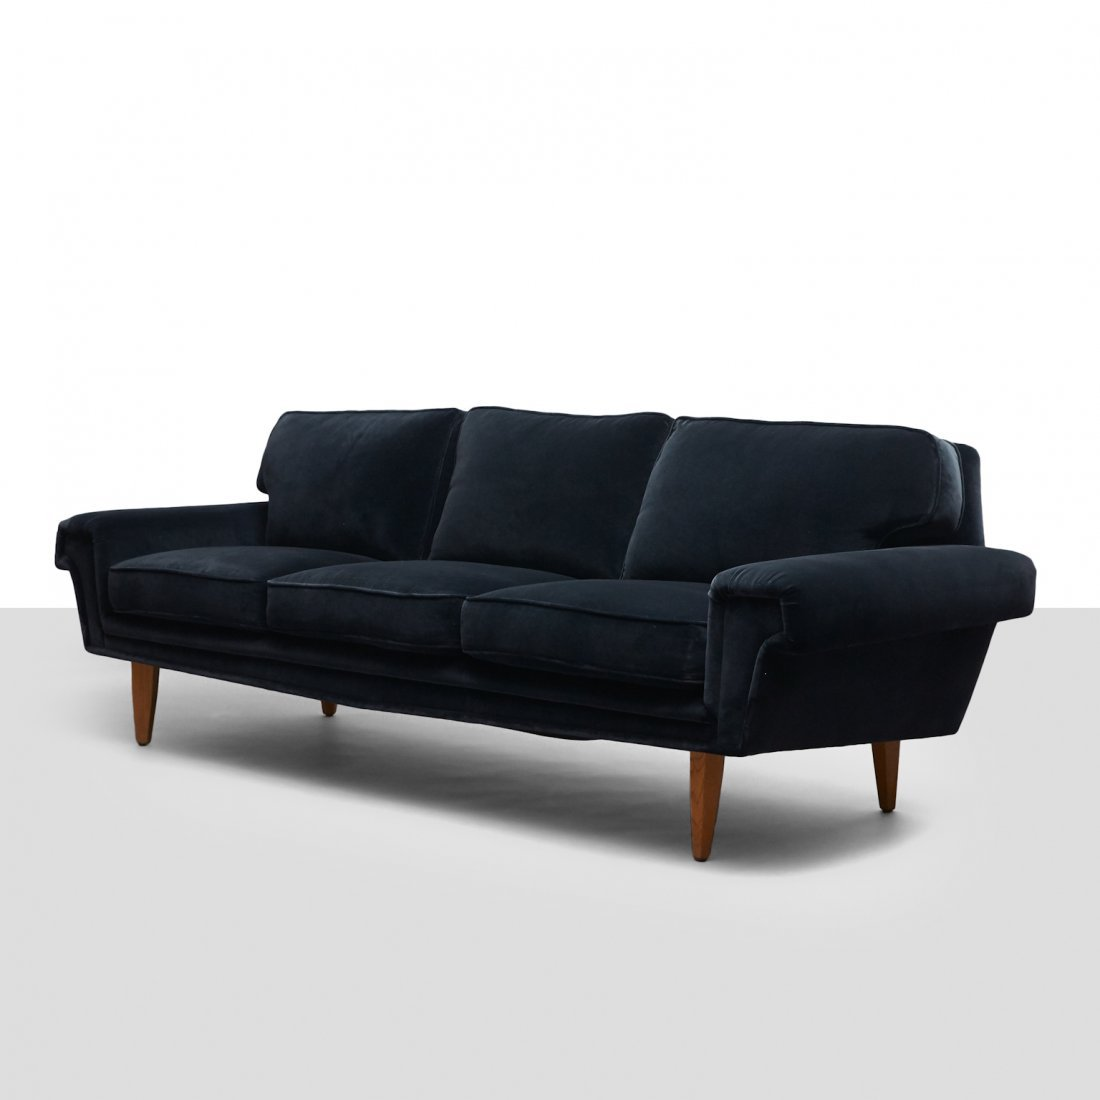 Swedish Design, Three-Seat Sofa